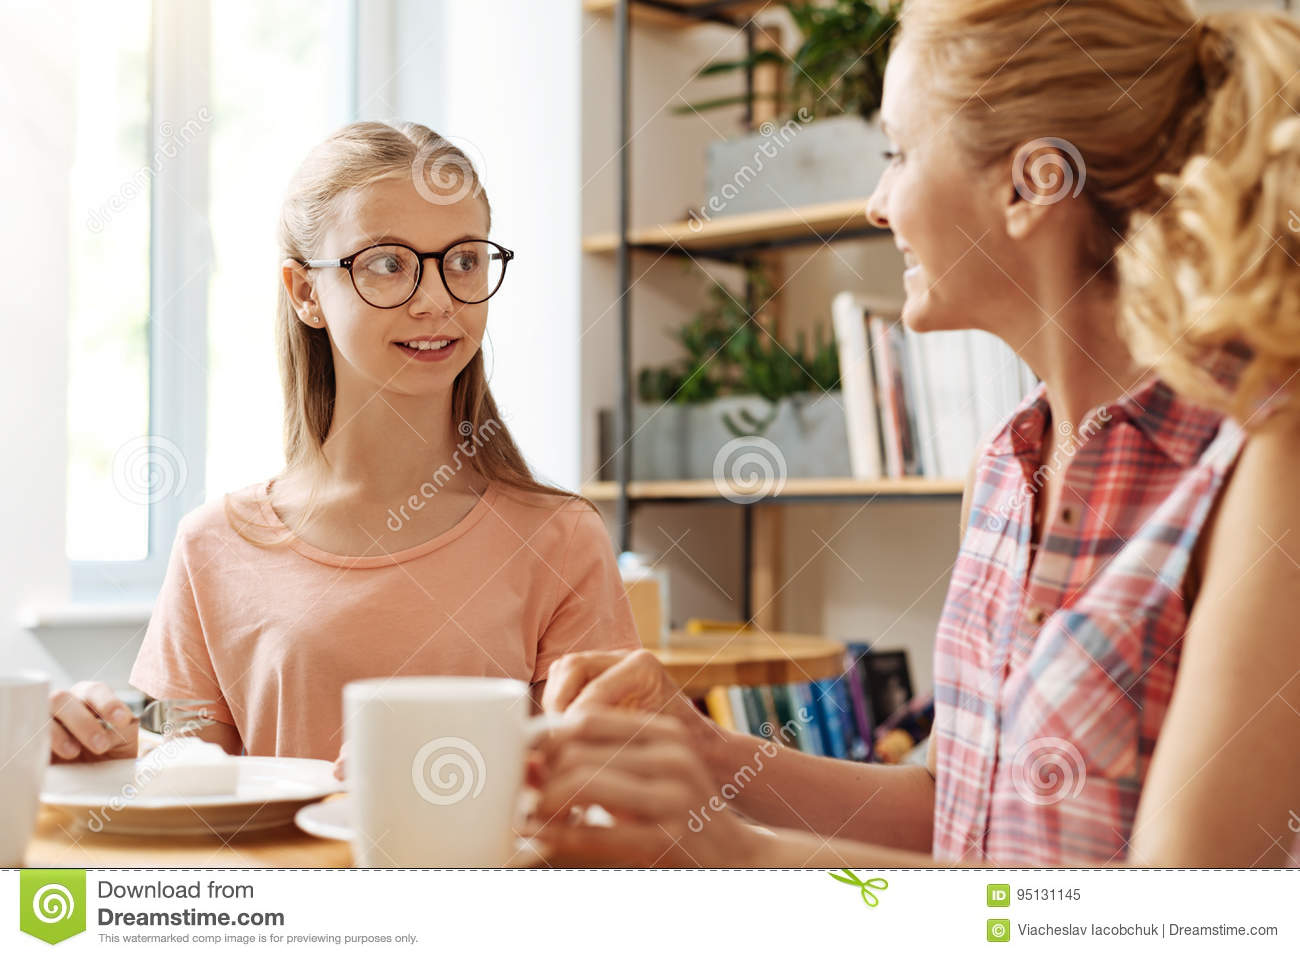 d67495db1455 Pretty teenage girl talking with her mother, discussing her school life  while relishing delicious cake and coffee. More similar stock images